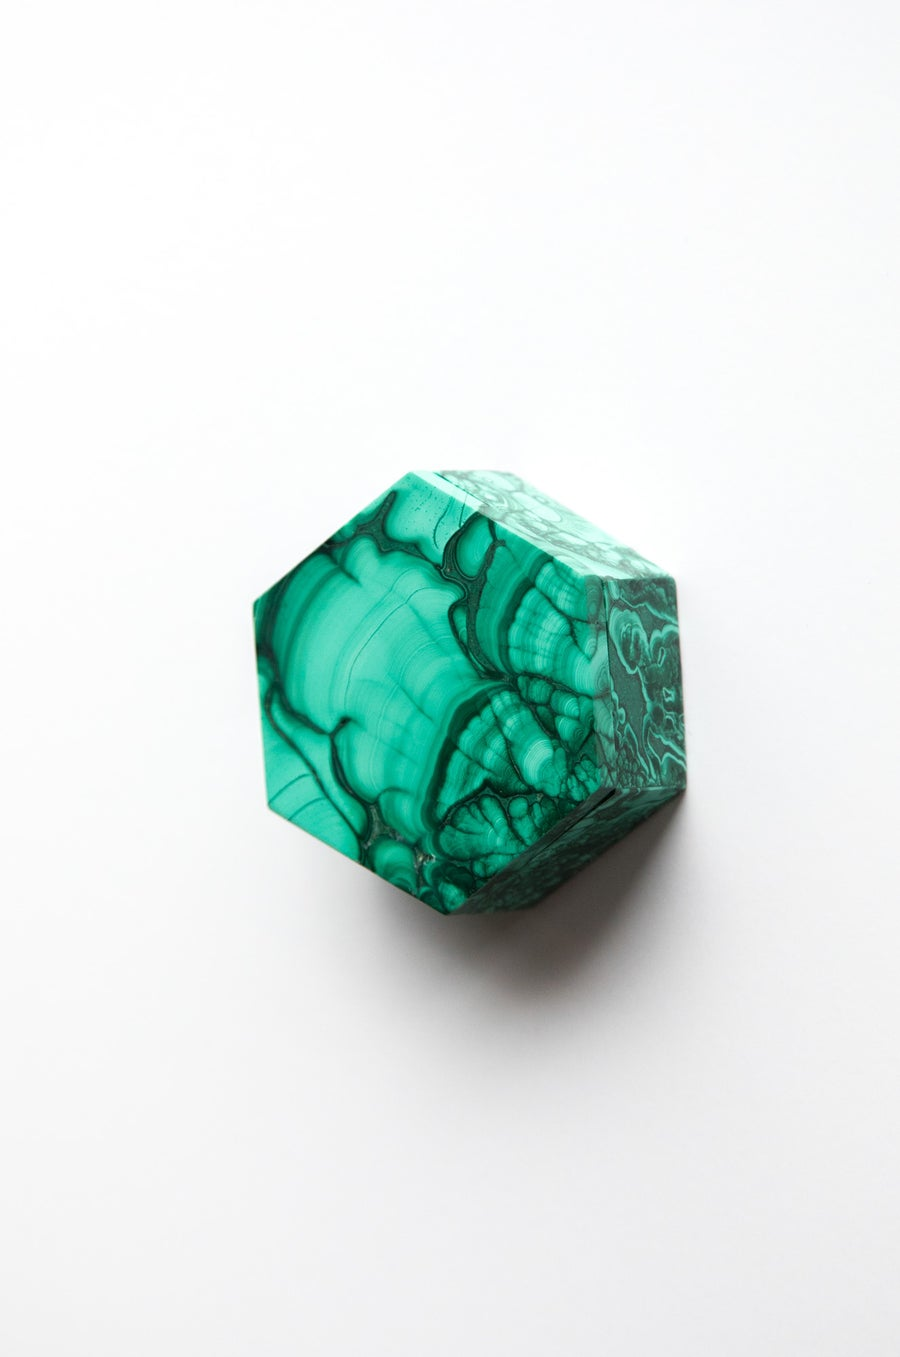 Image of Hexagonal Malachite Box